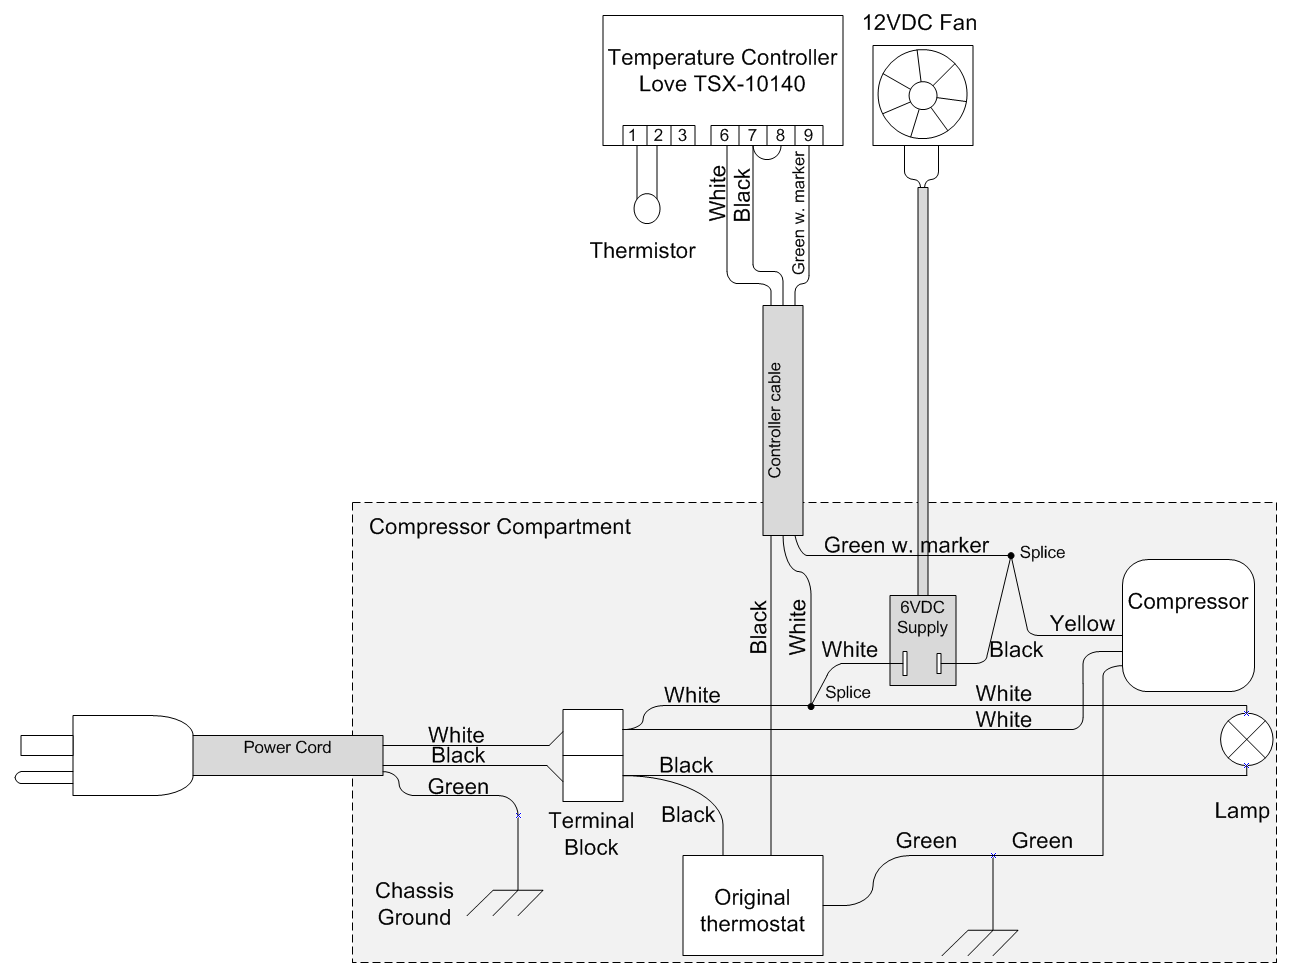 [DIAGRAM_5FD]  CW_3193] True Refrigerator Compressor Wiring Diagram | Wiring Diagram For Freezer |  | Obenz Benkeme Mohammedshrine Librar Wiring 101